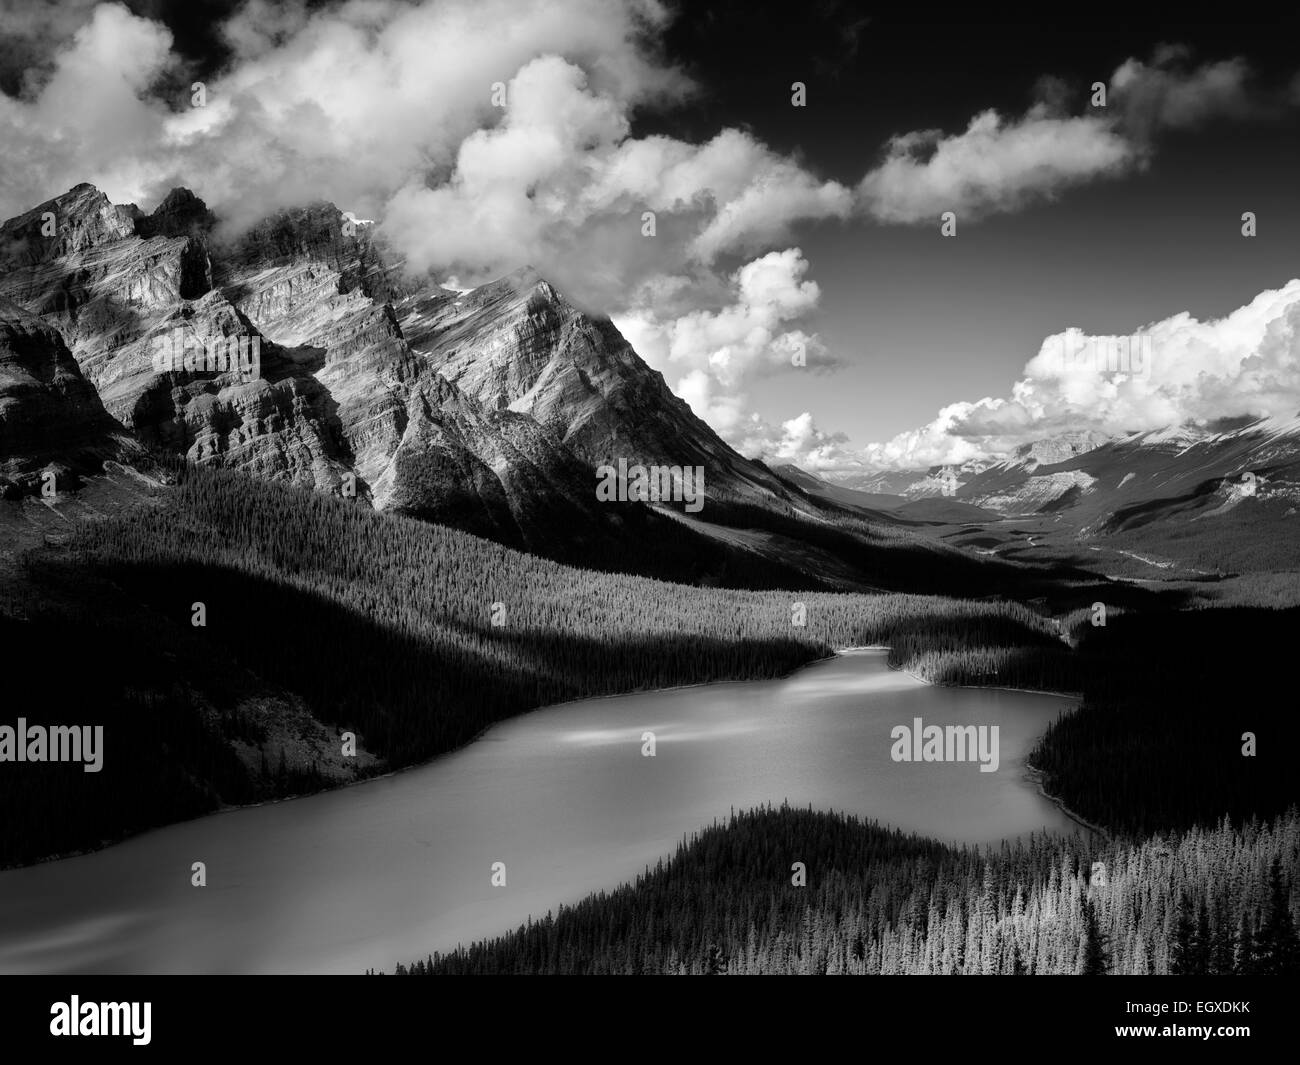 Peyto Lake. Banff National Park. Alberta. Canada. - Stock Image